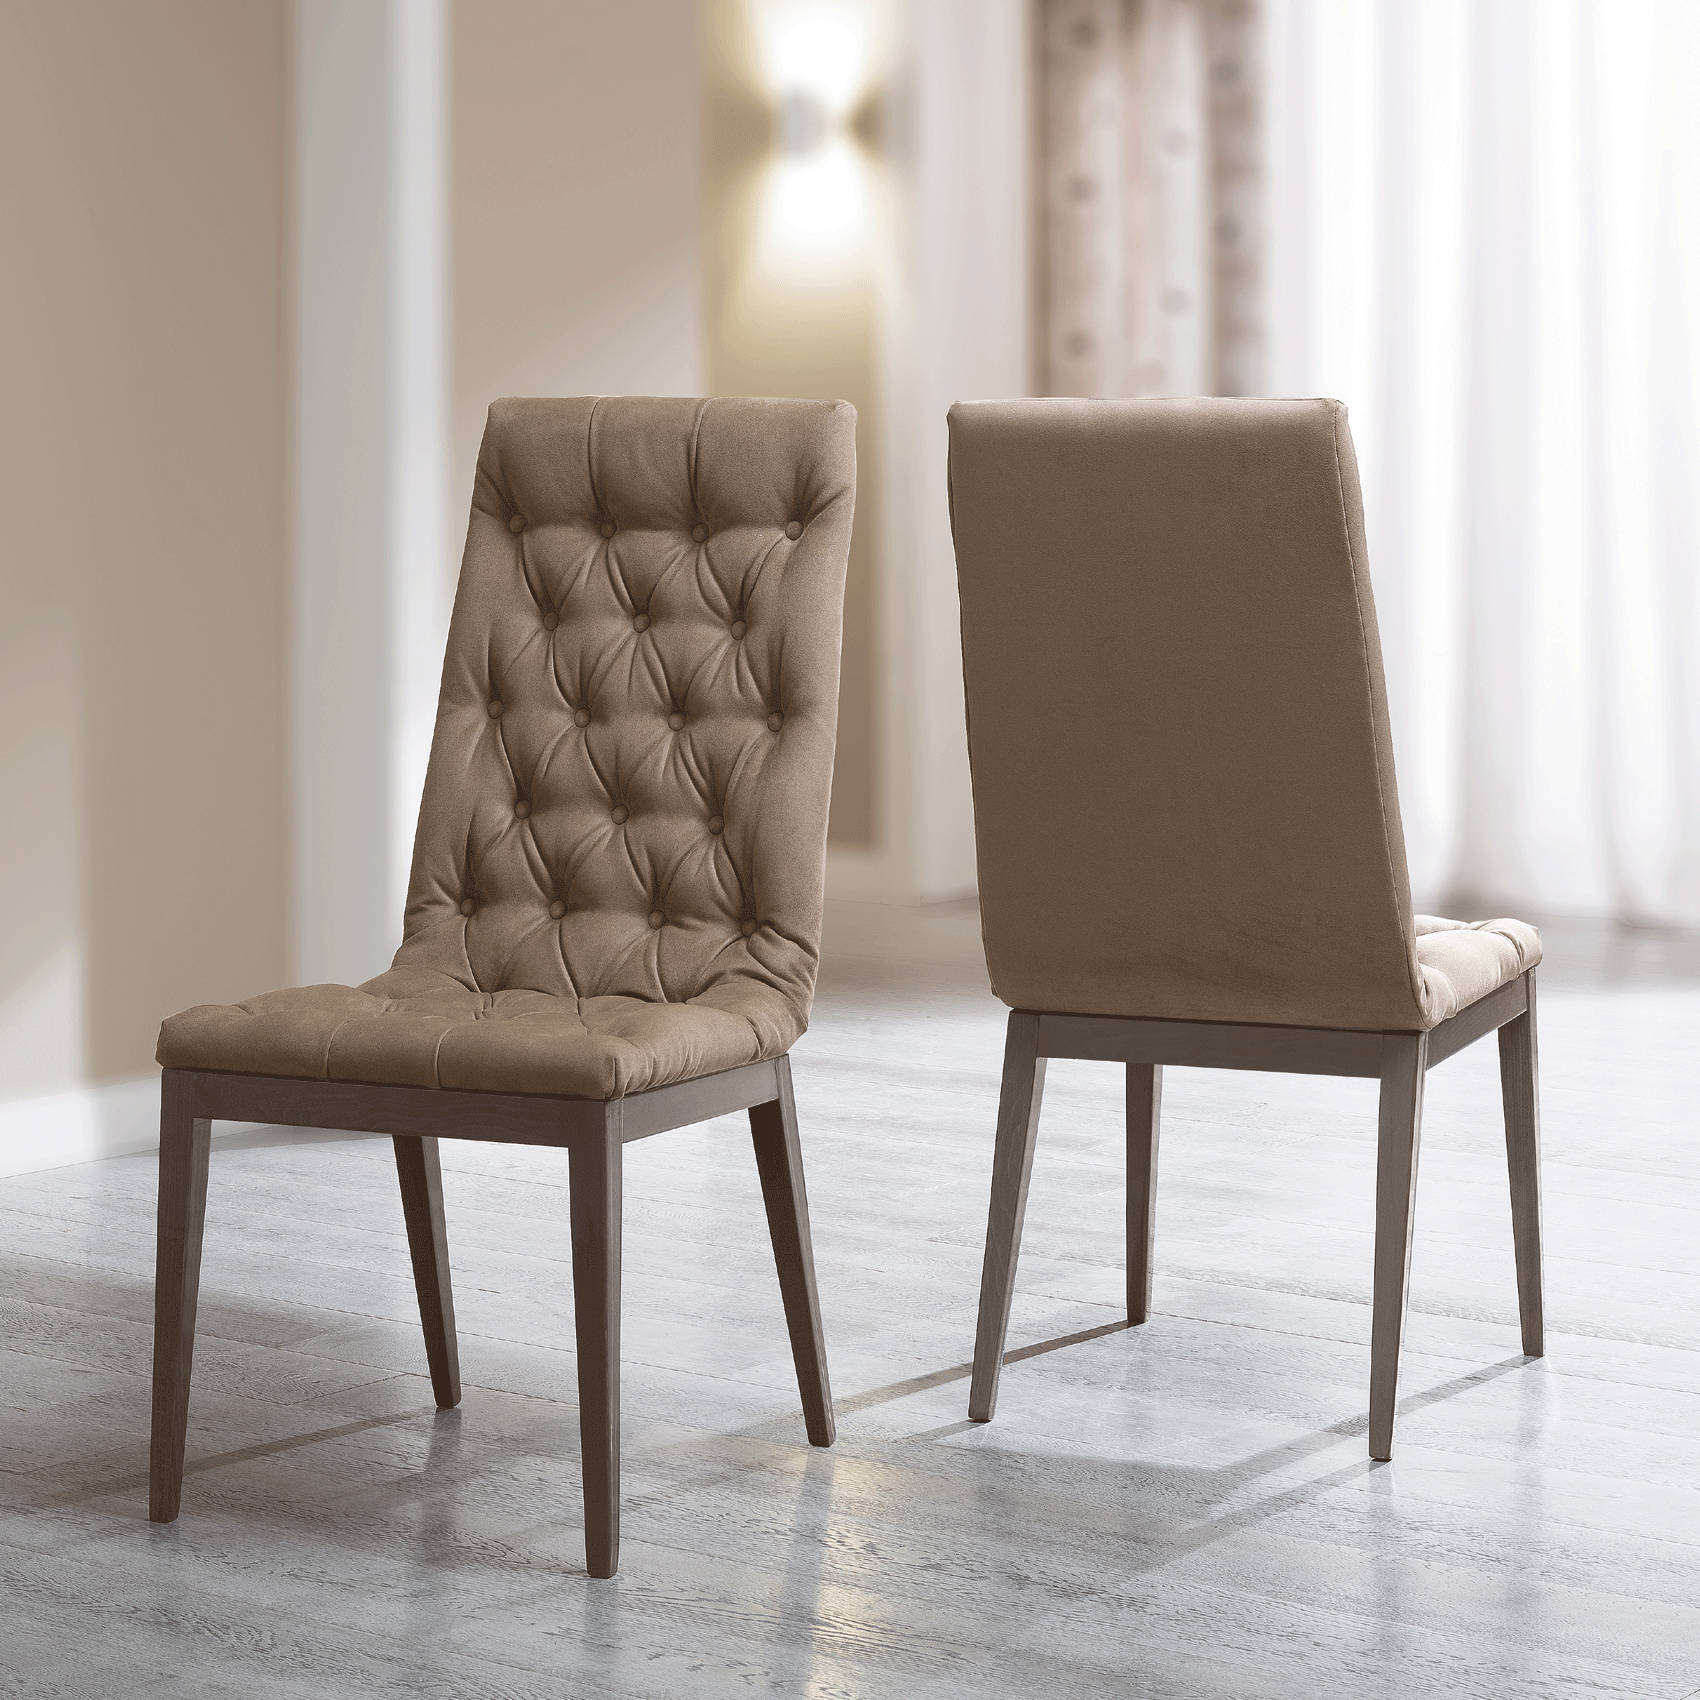 2 Esf Camelgroup Italy Elite Side Chairs The Classy Home